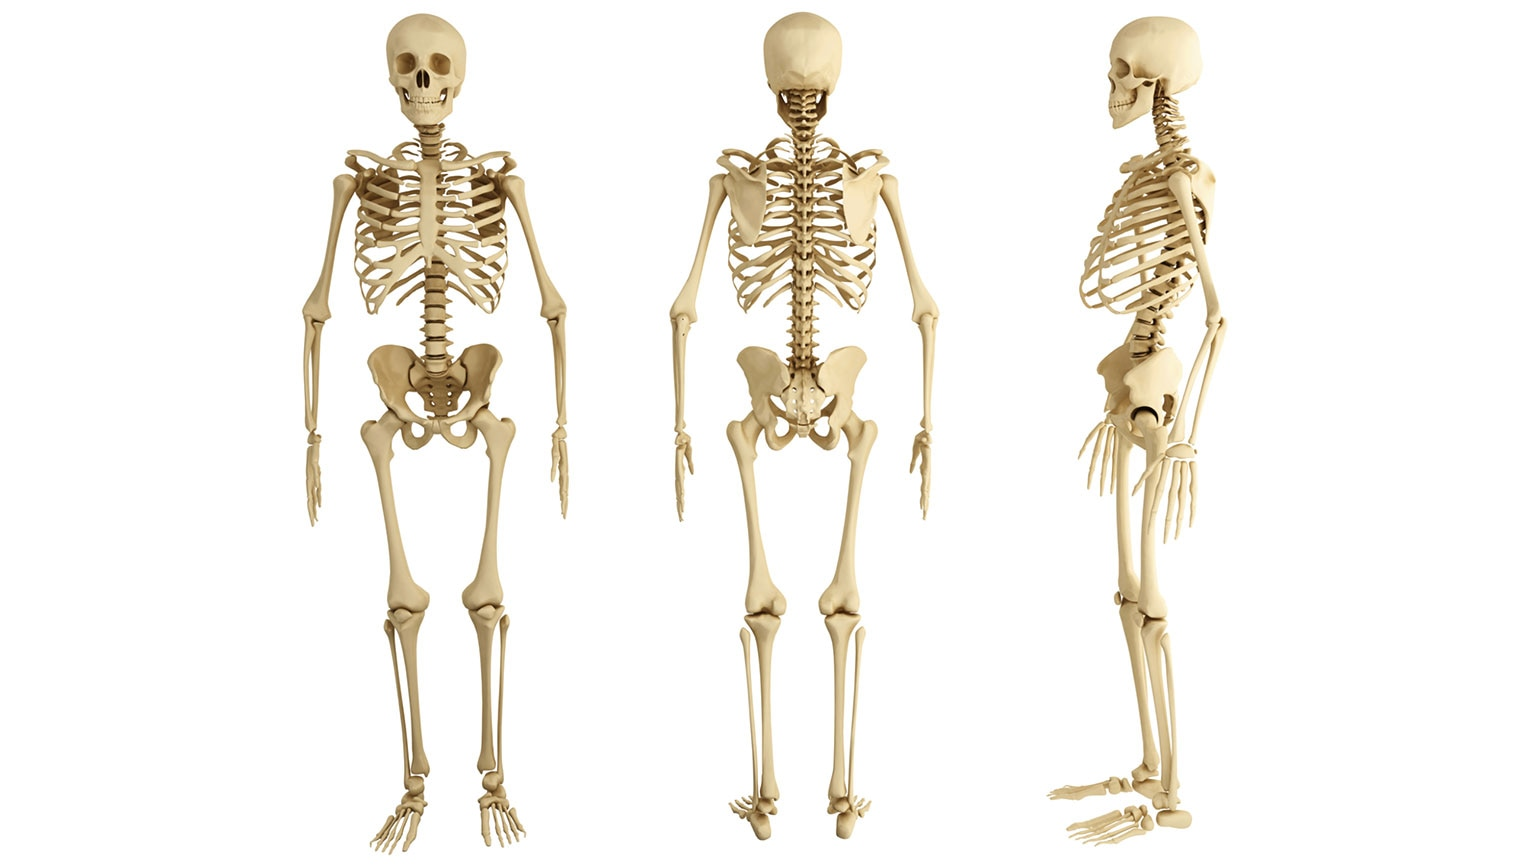 Musculoskeletal System—Bones | The Great Courses Plus